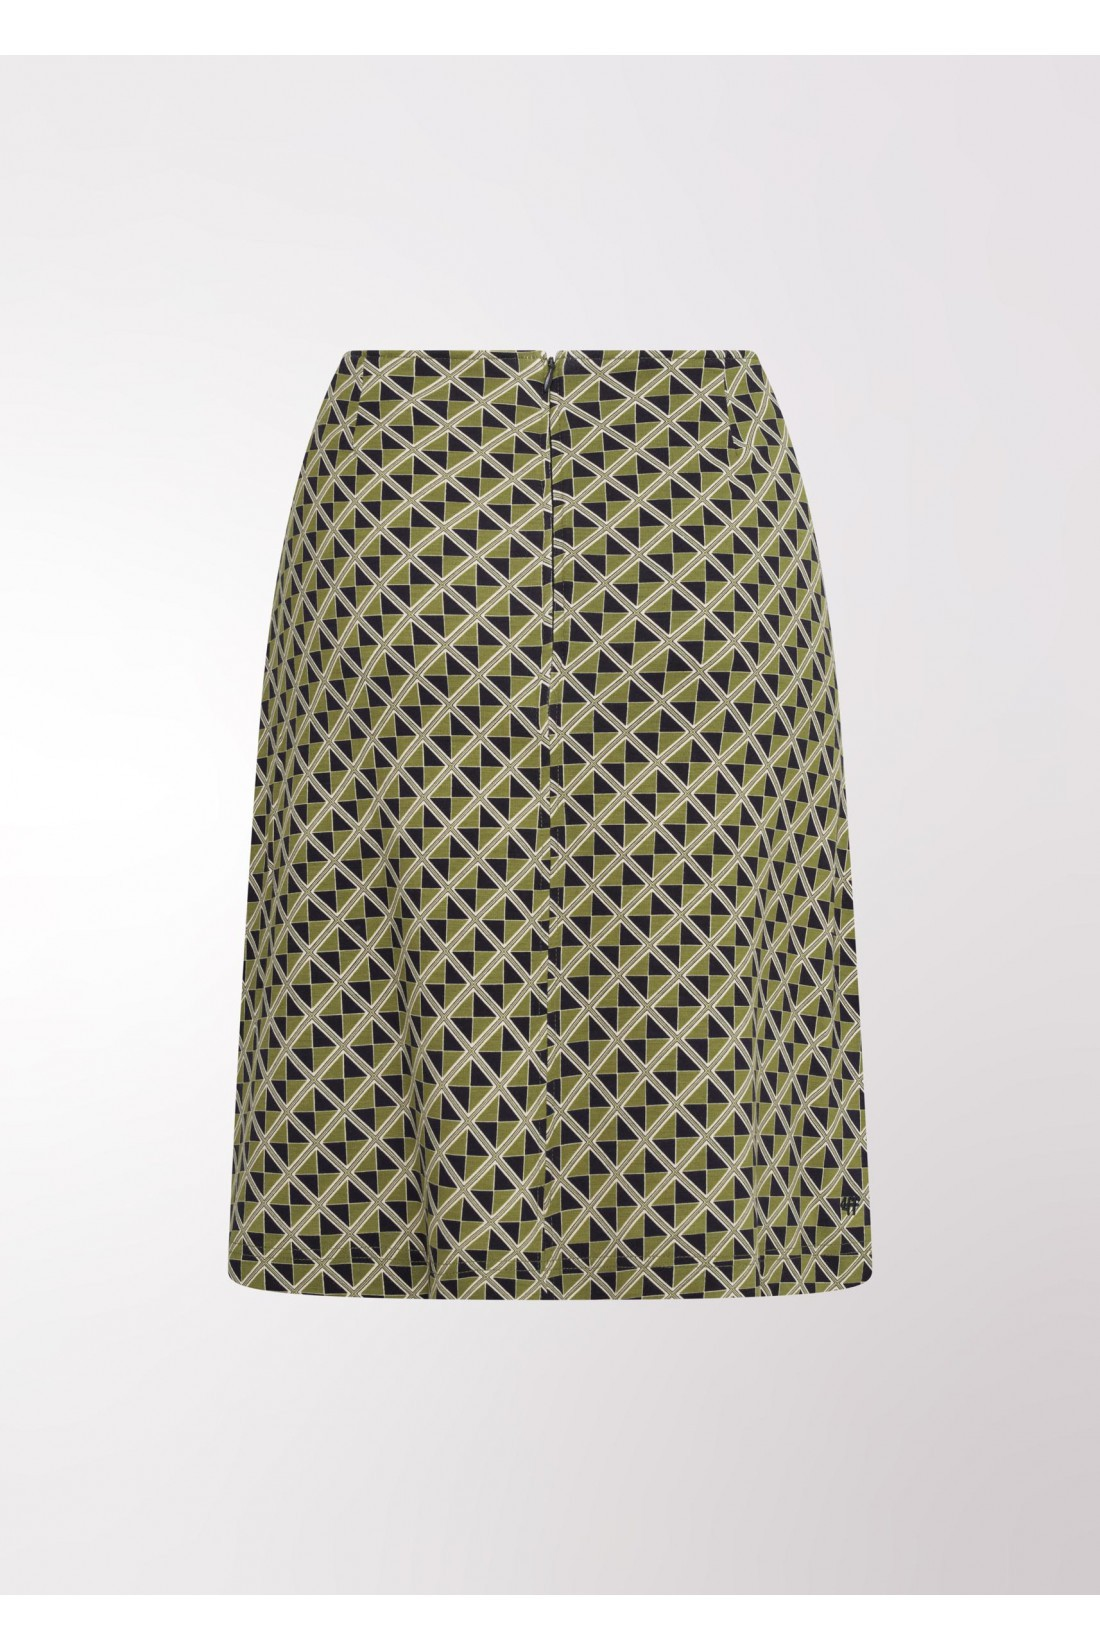 green skirt with geometric pattern 4FF, Your love is a life saver